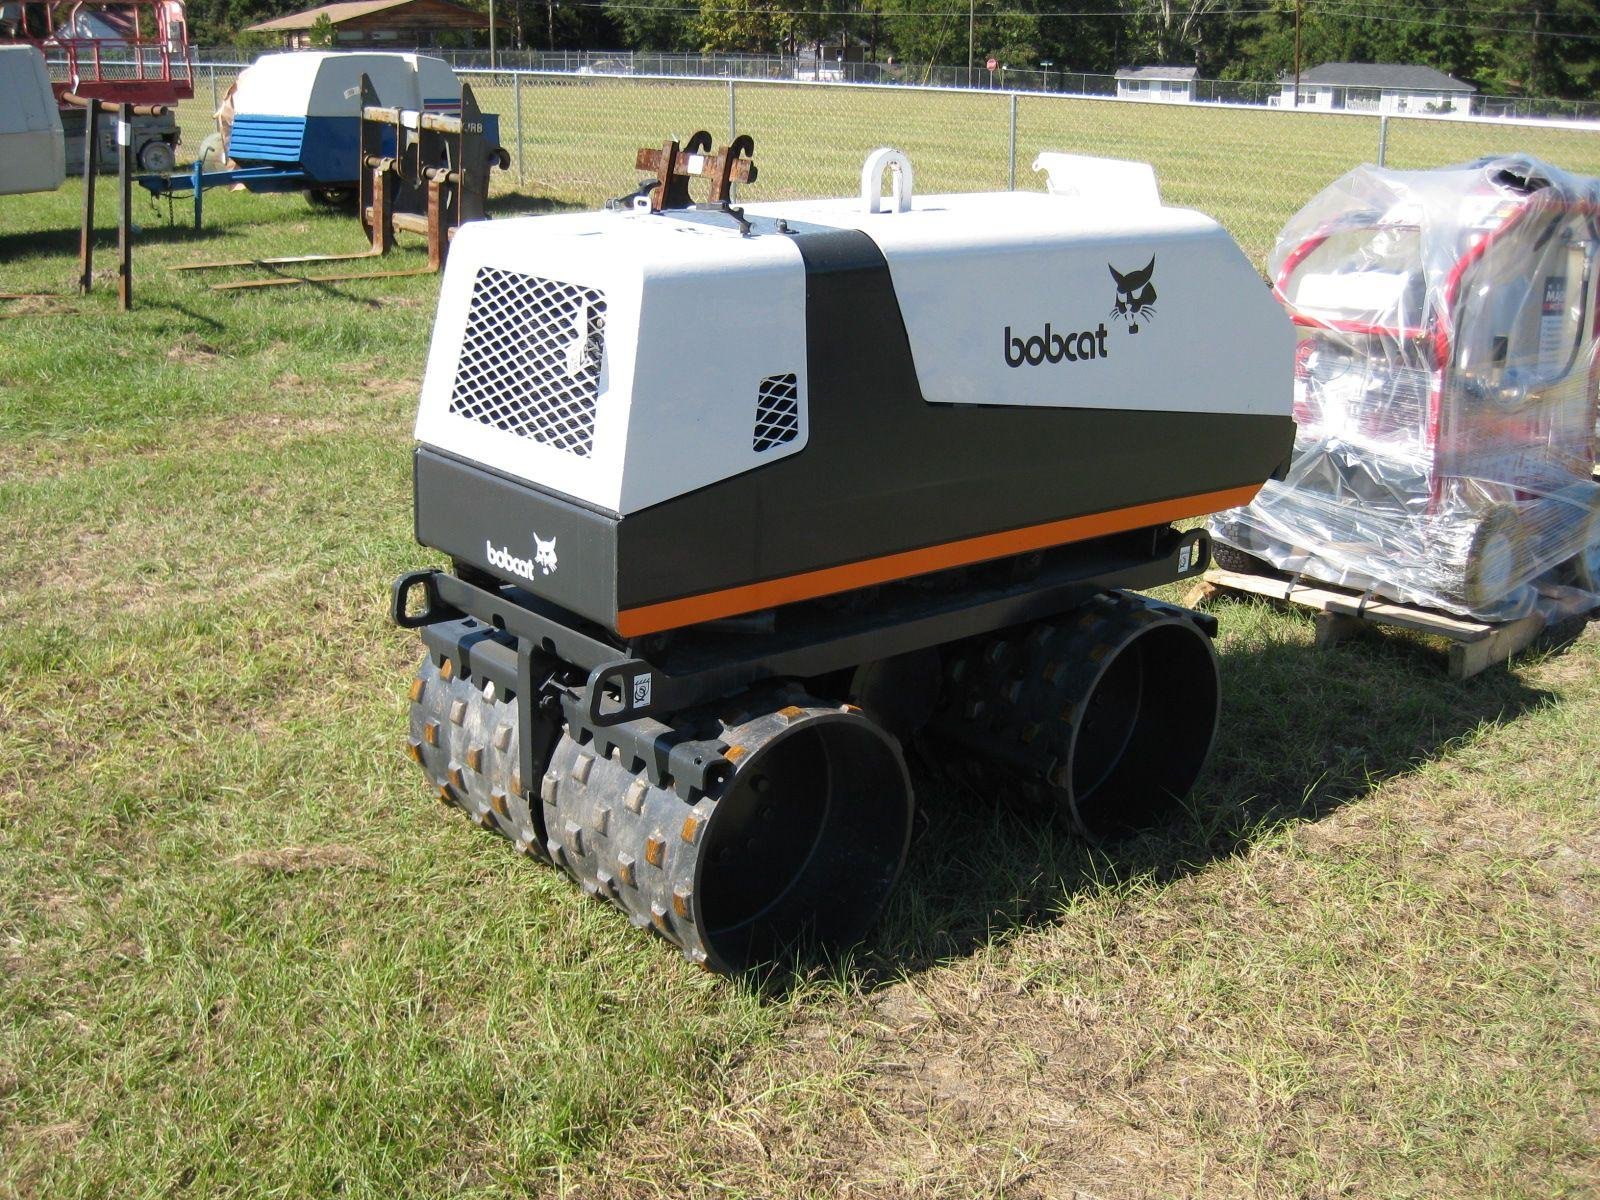 bobcat ingersoll rand bct 13 trench compactor s n 18558image 1 bobcat ingersoll rand bct 13 trench [ 1600 x 1200 Pixel ]